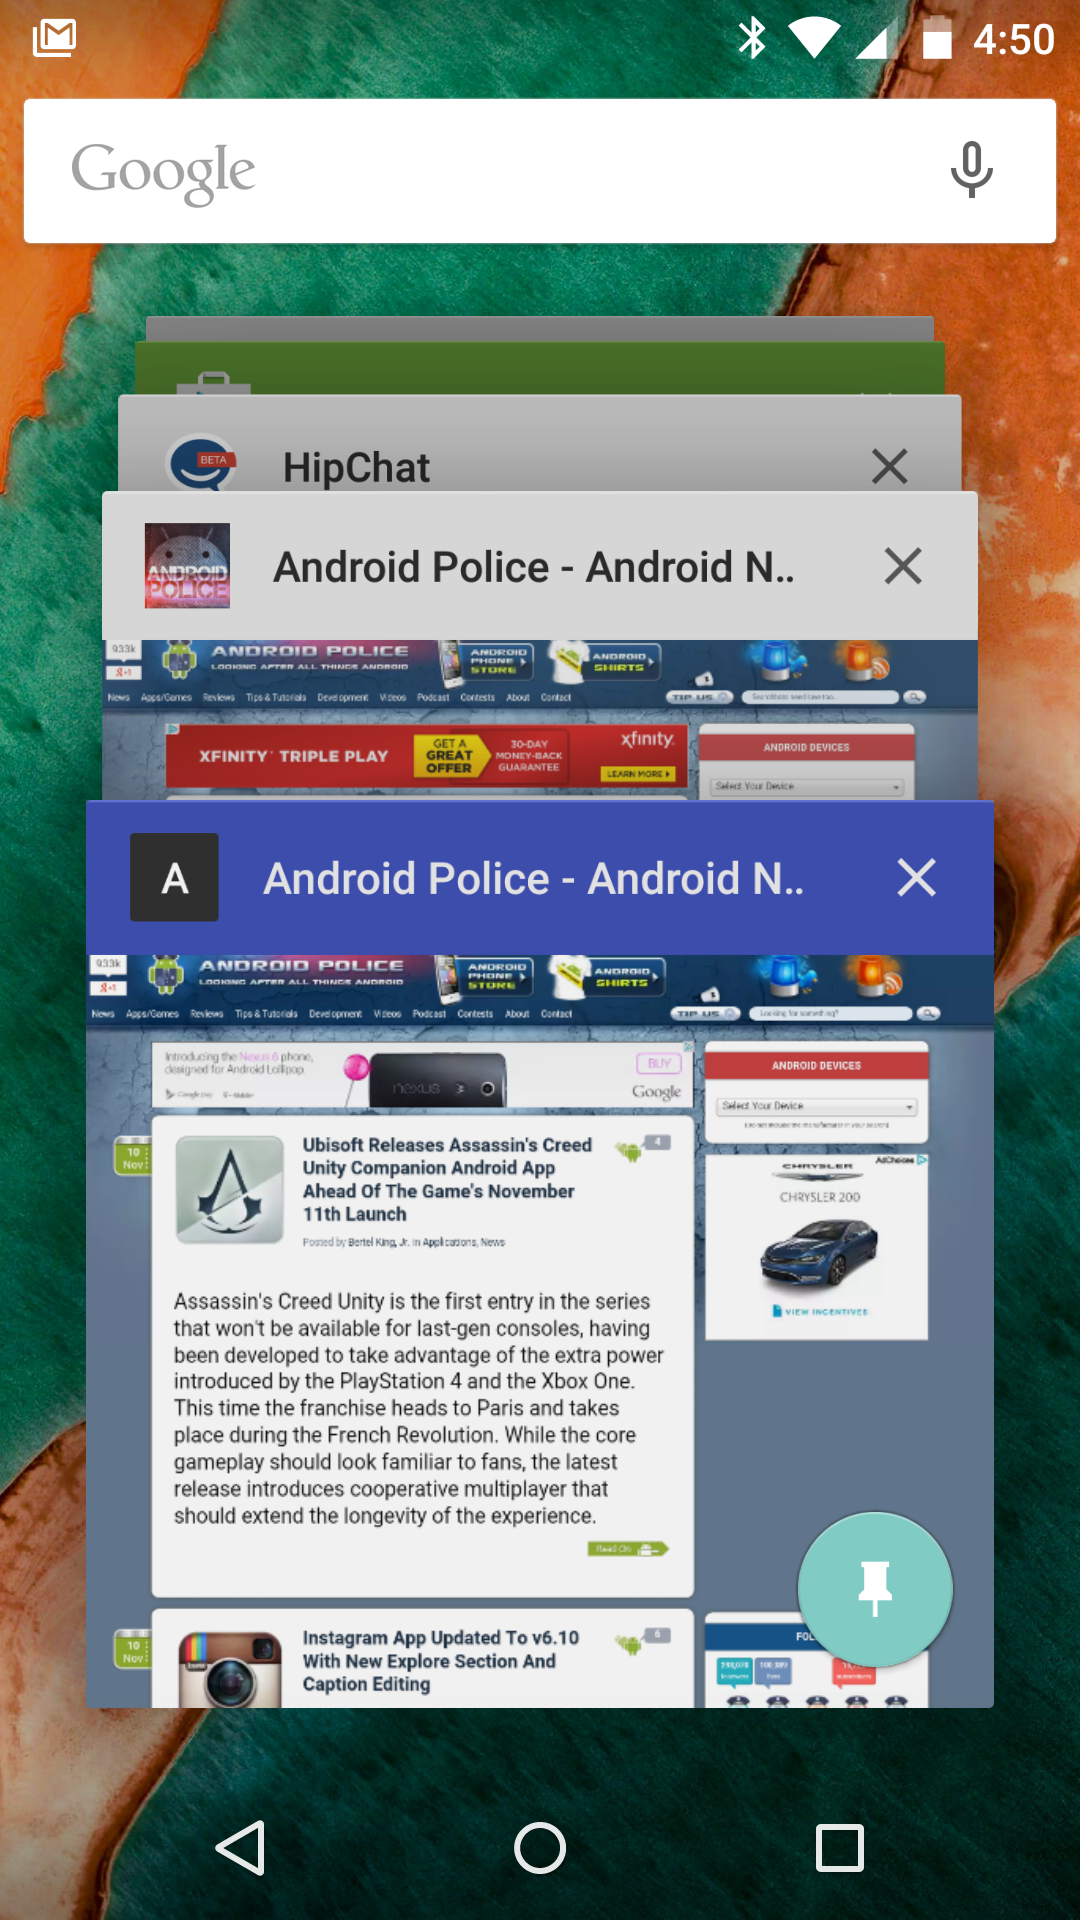 Chrome v39 On Lollipop Supports Custom Multitasking Header/Status Bar Colors With A Simple HTML Tag